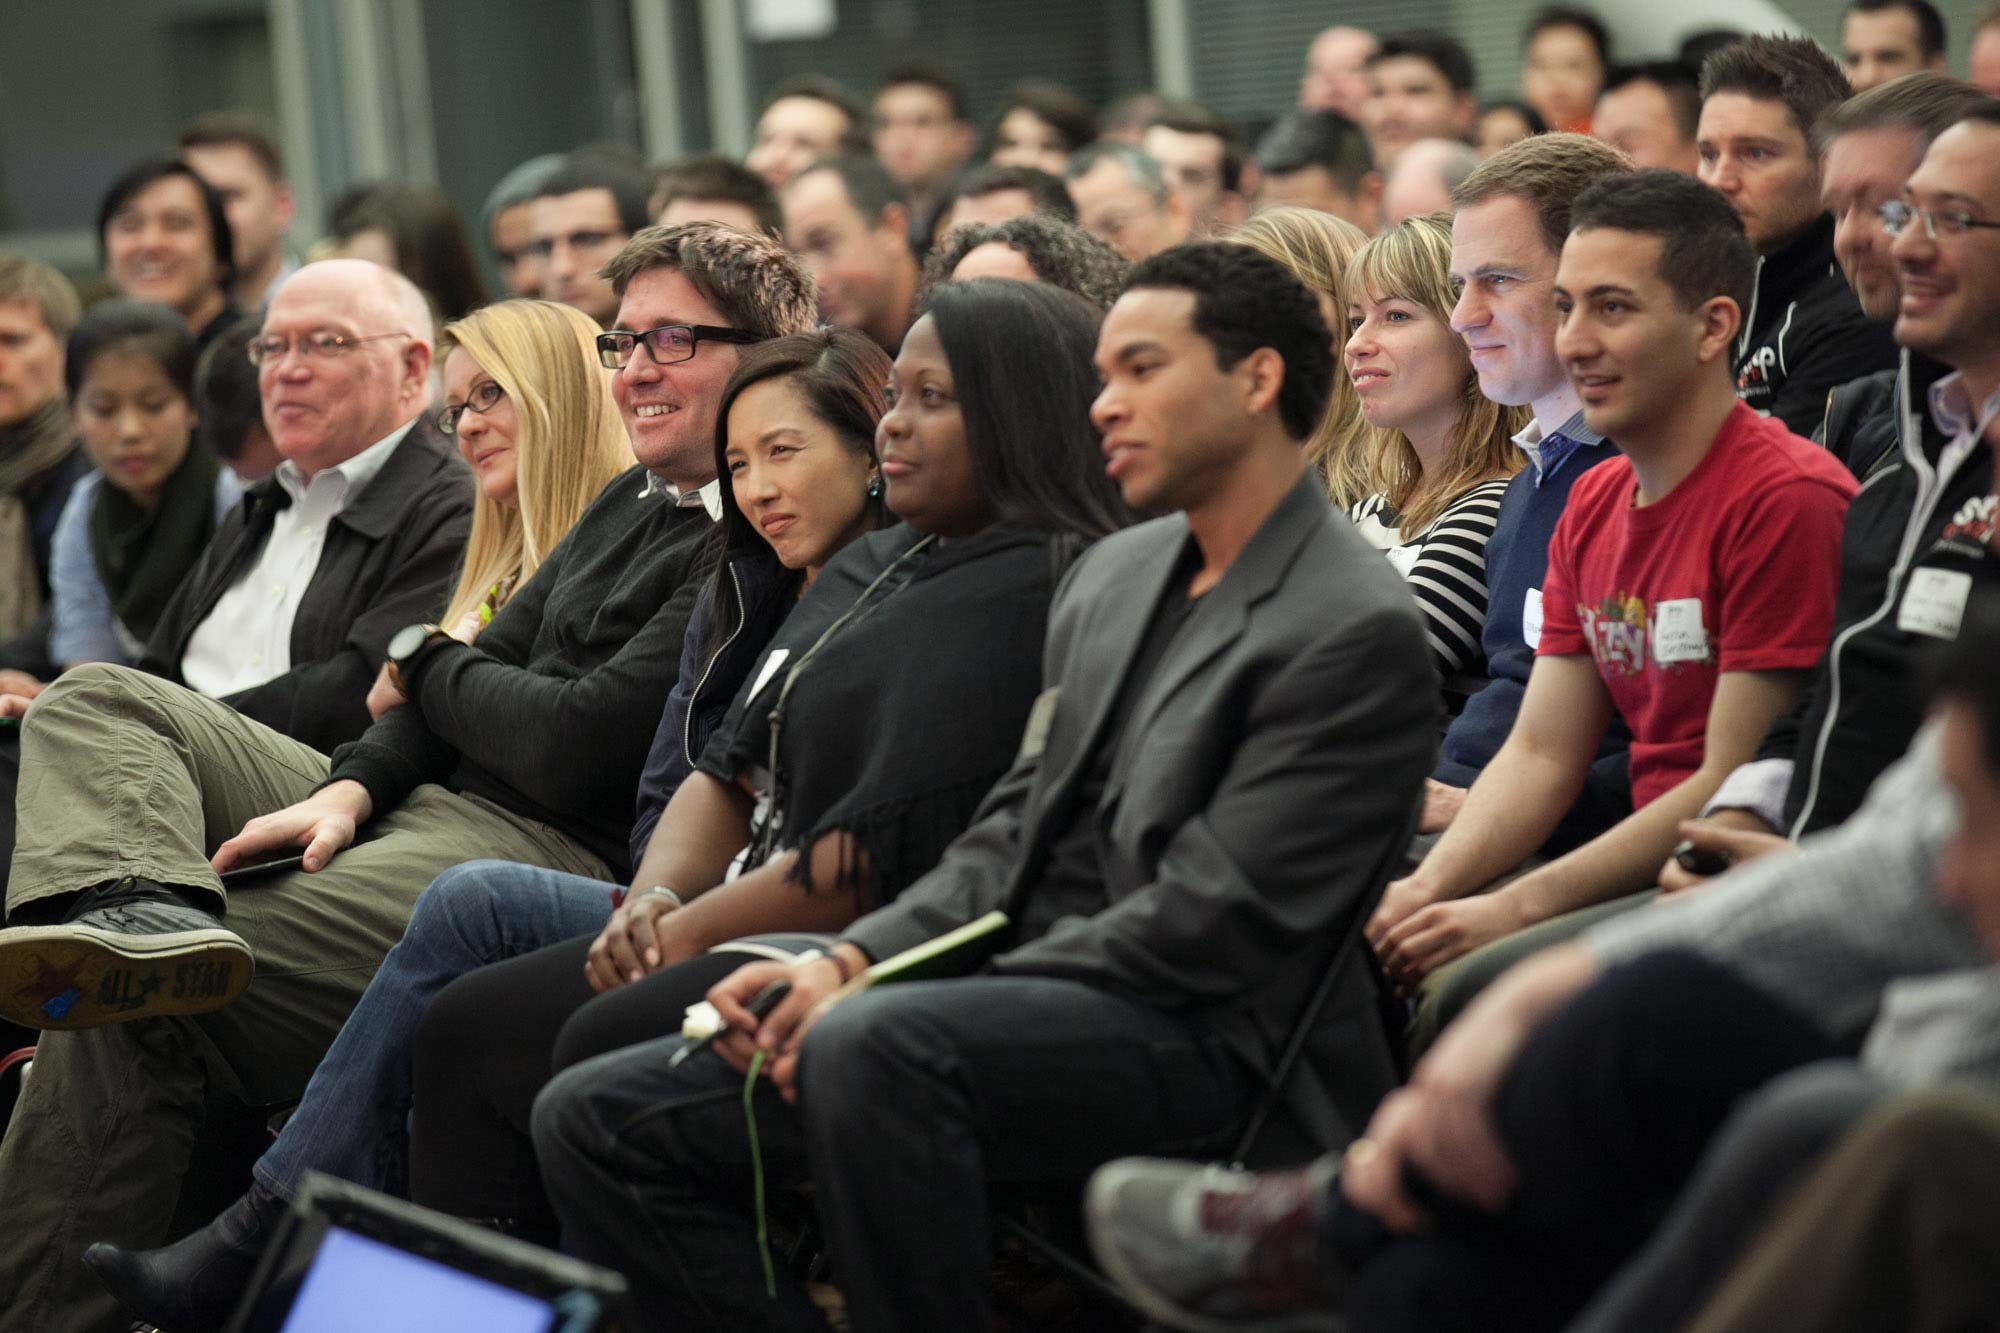 Audience  at Startup Grind 2014